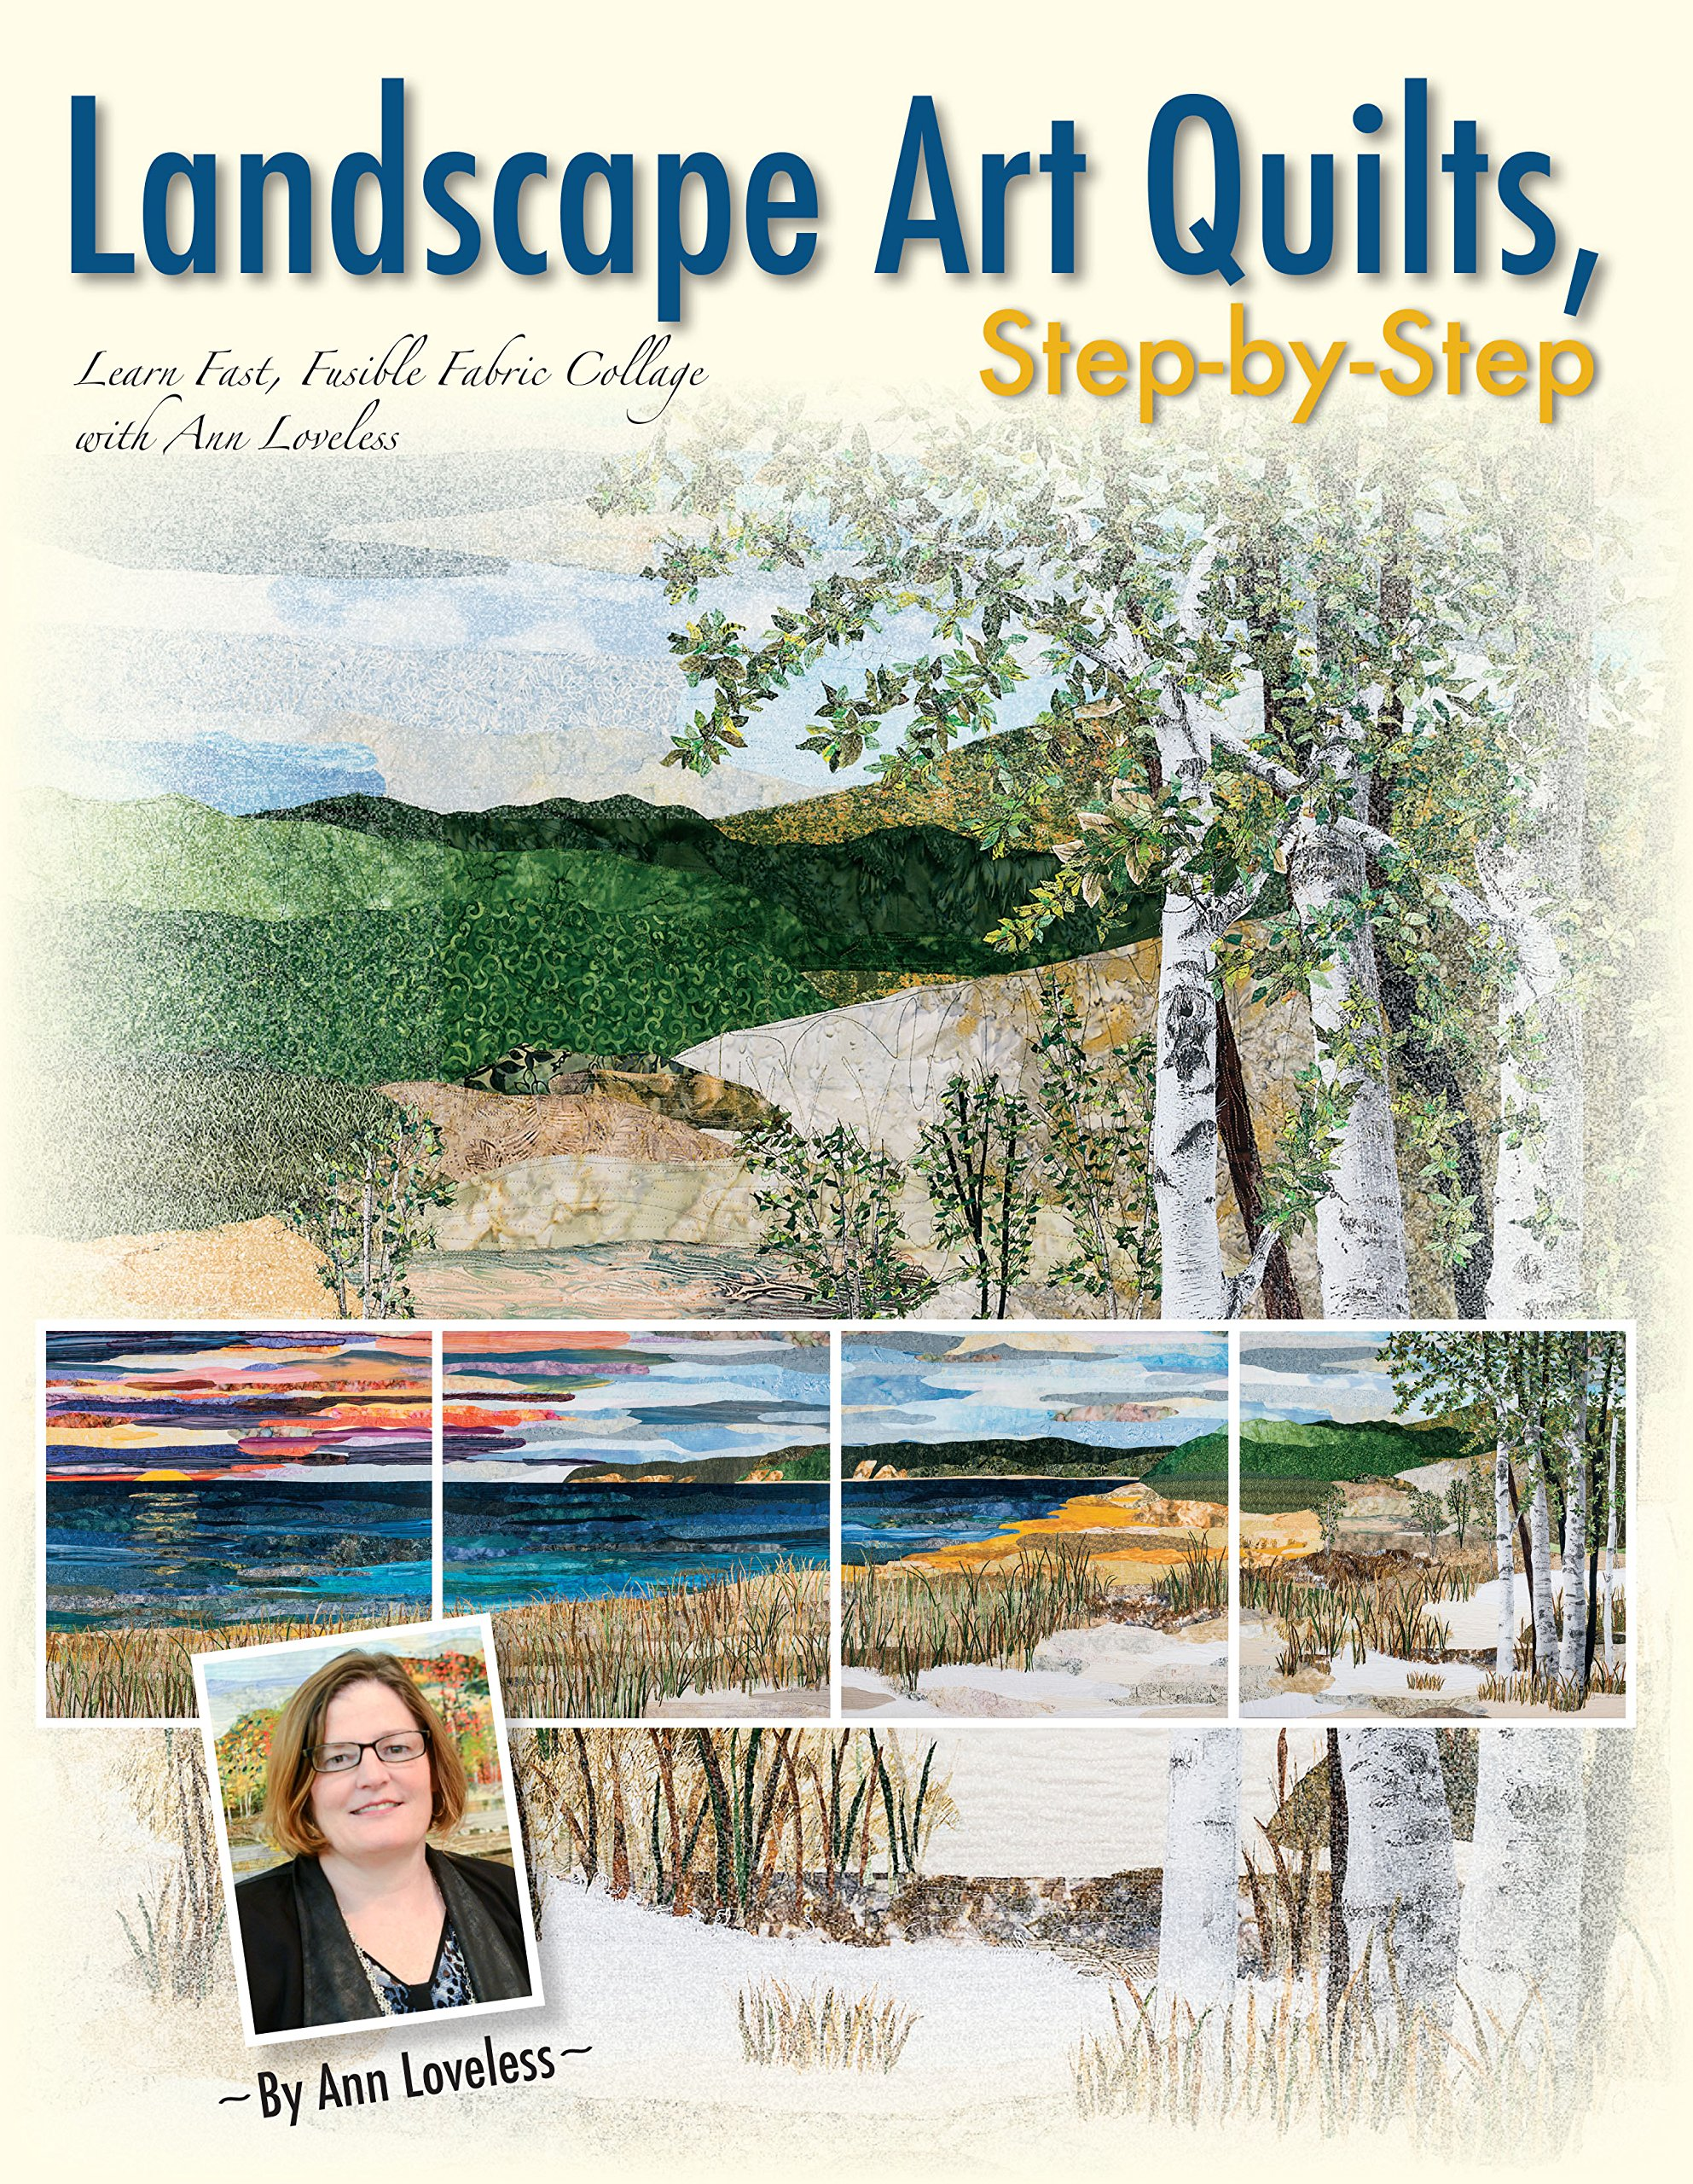 Landscape Art Quilts, Step by Step: Learn Fast, Fusible Fabric Collage with Ann Loveless by C T Publishing Kansas City Star Quilts (Image #1)